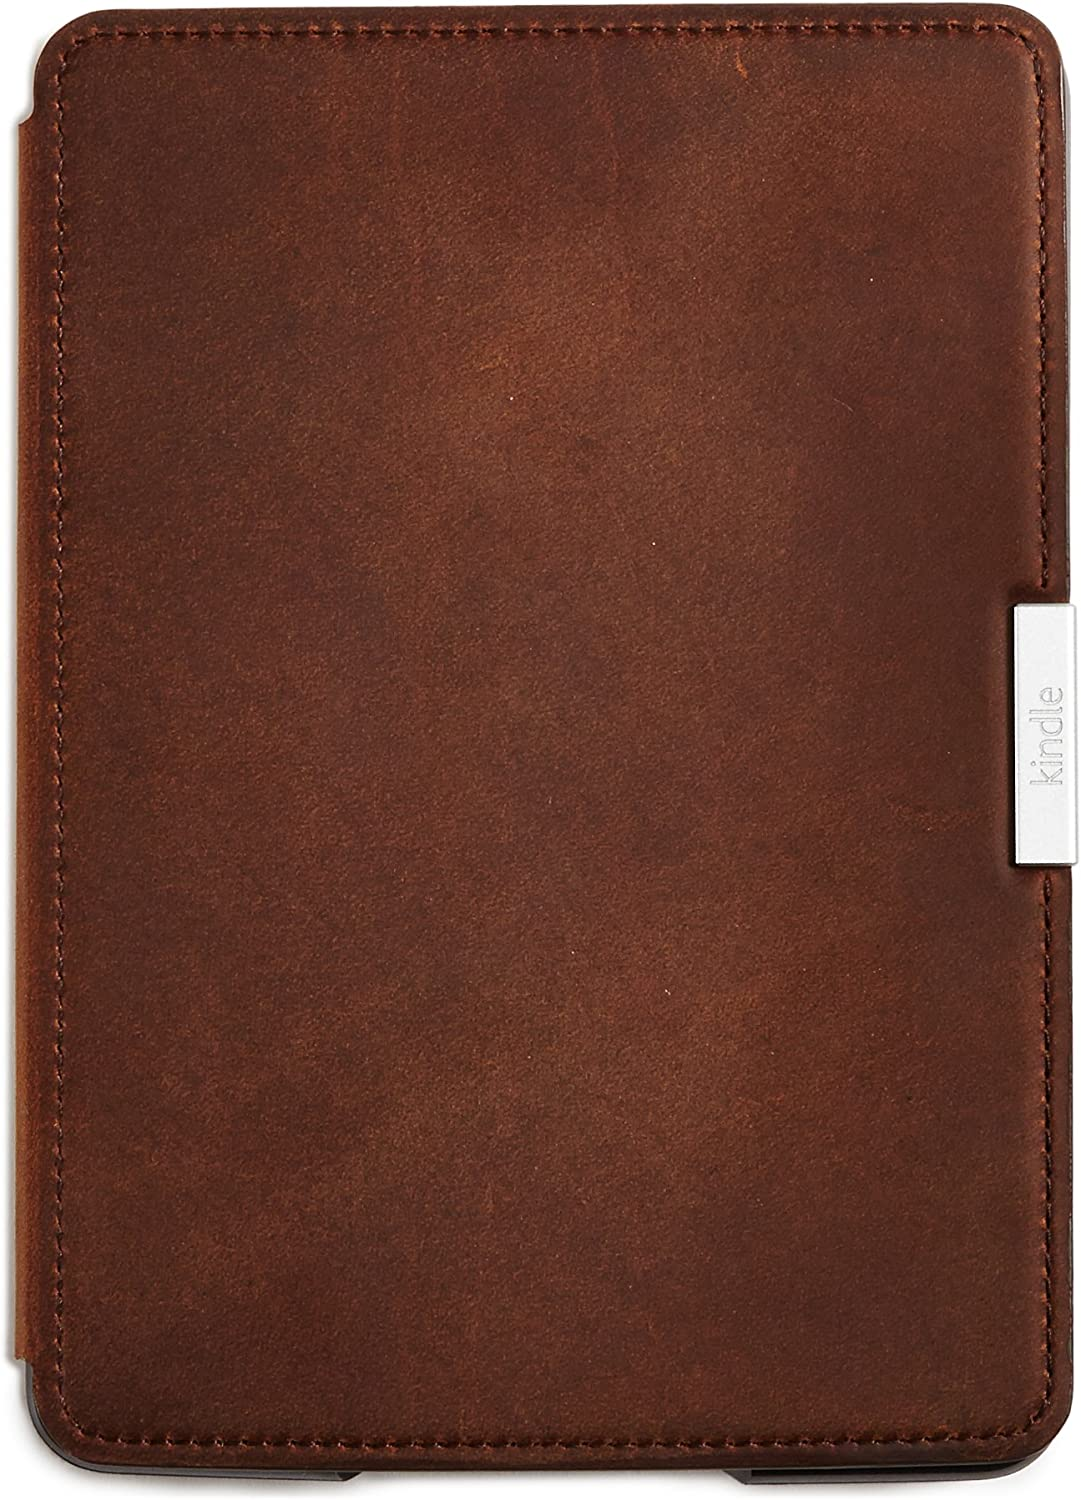 does not fit Kindle Paperwhite Kindle Leather Cover Saddle Tan